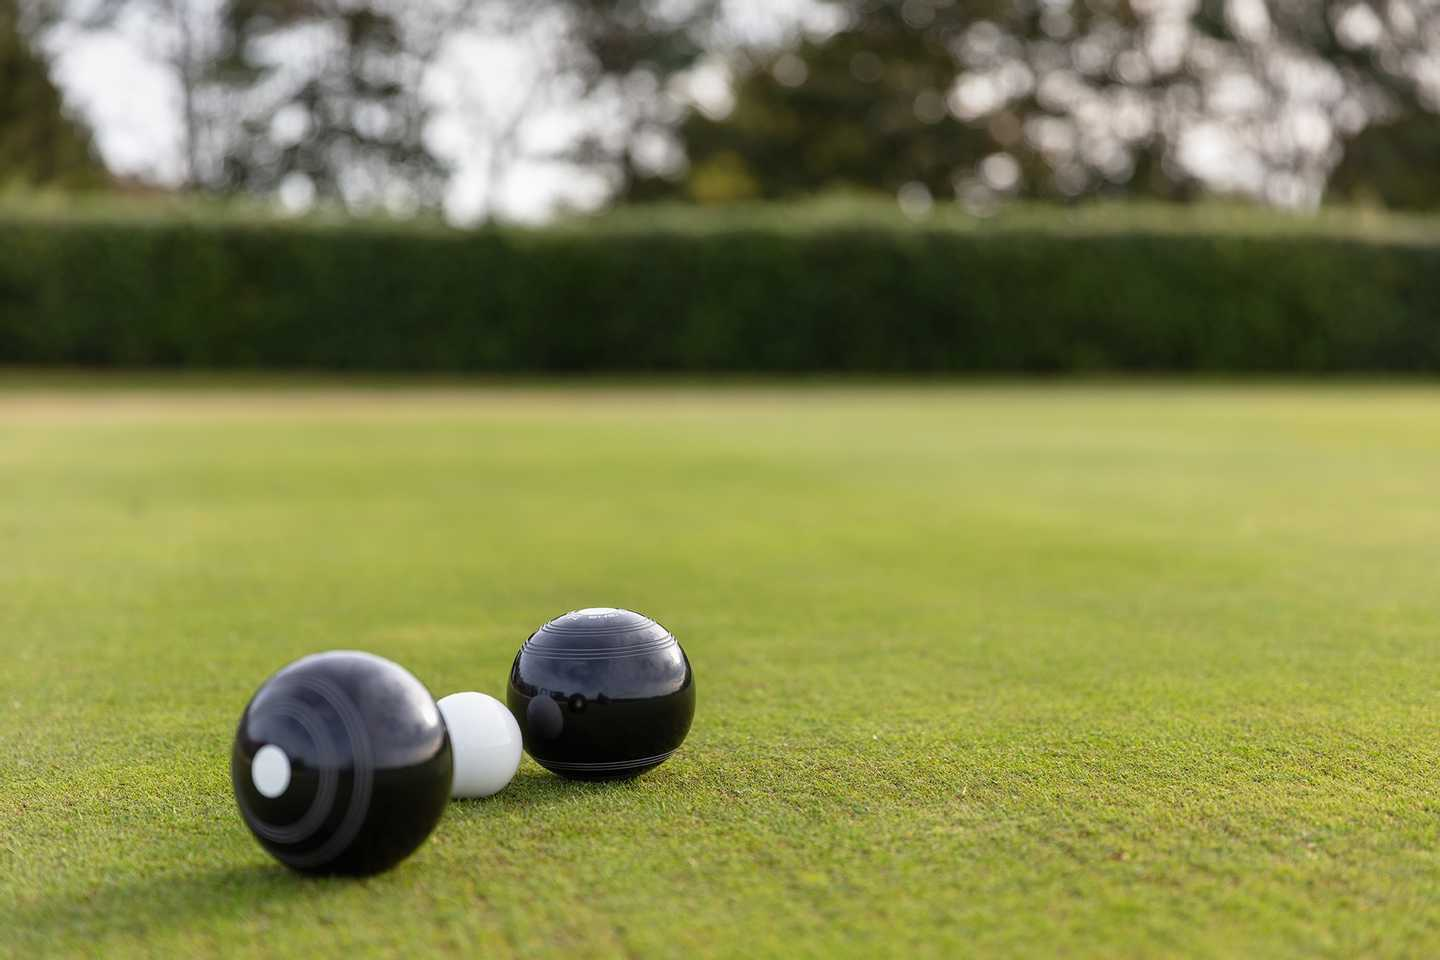 Two bowls on the bowling green